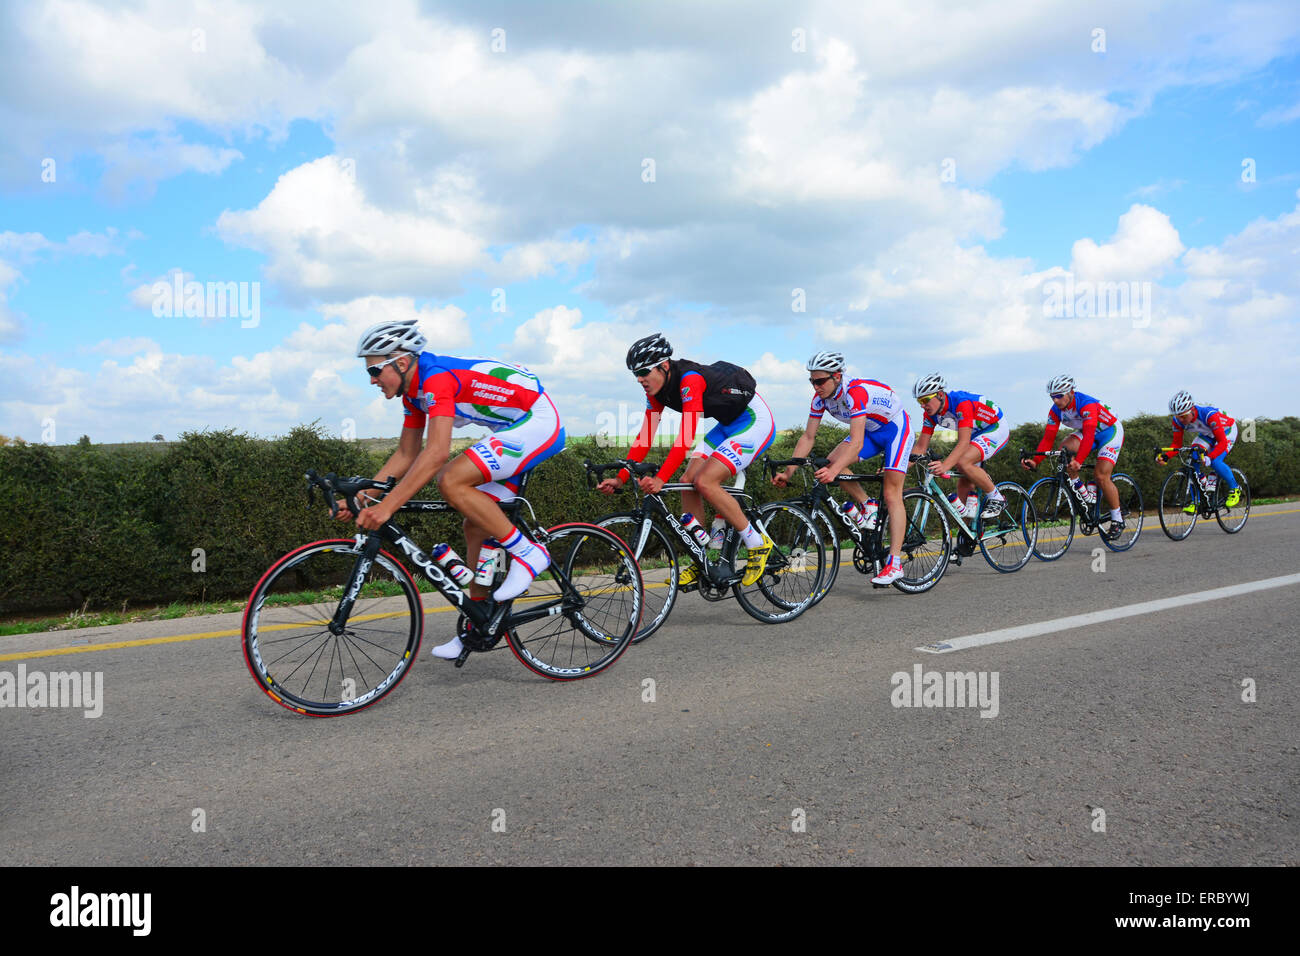 Bicycle team riders - Stock Image